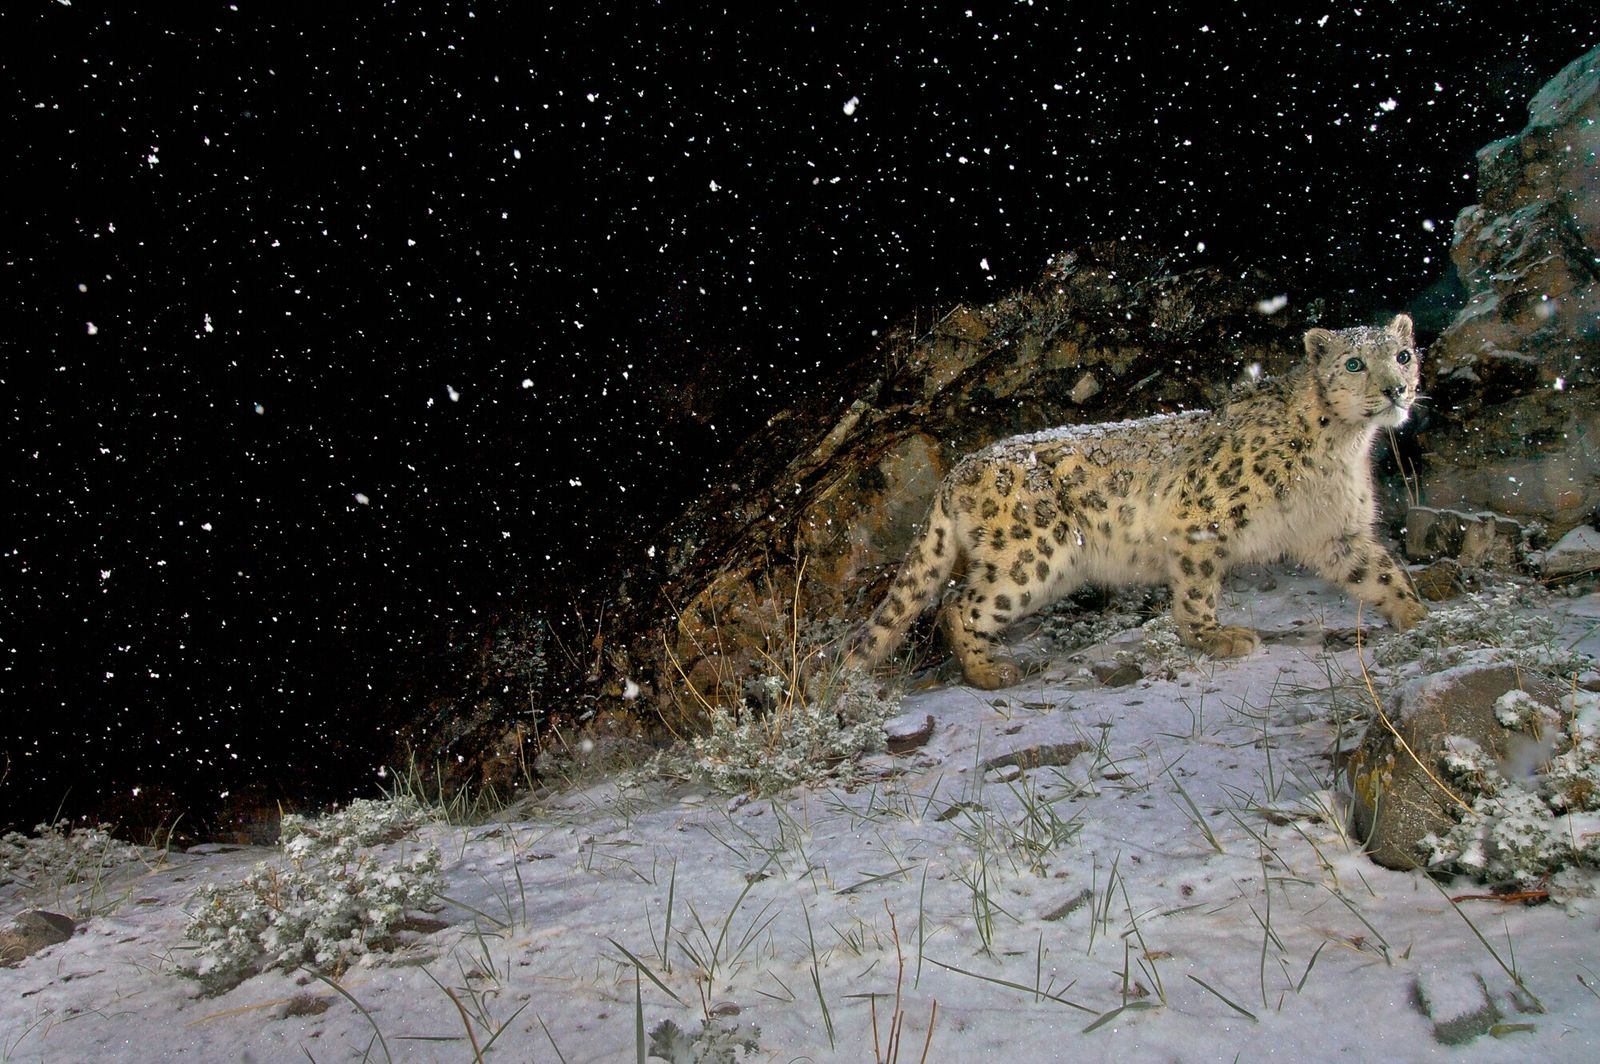 2008: Captured on a painstakingly-set camera trap, the famously elusive snow leopard in Hemis National Park, ...